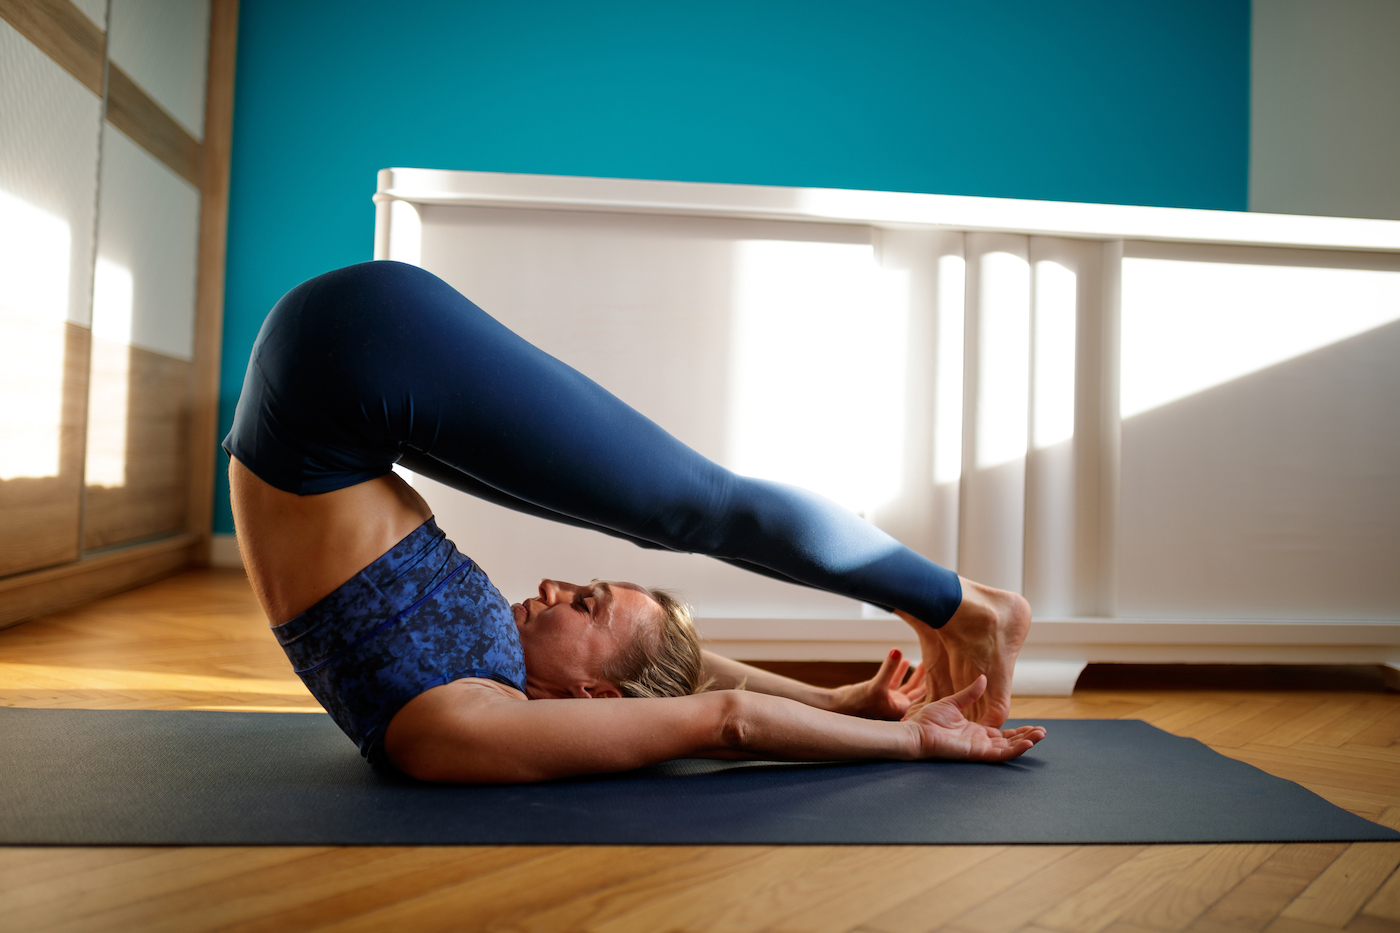 Thumbnail for Do you need to stretch after yoga? A physical therapist explains